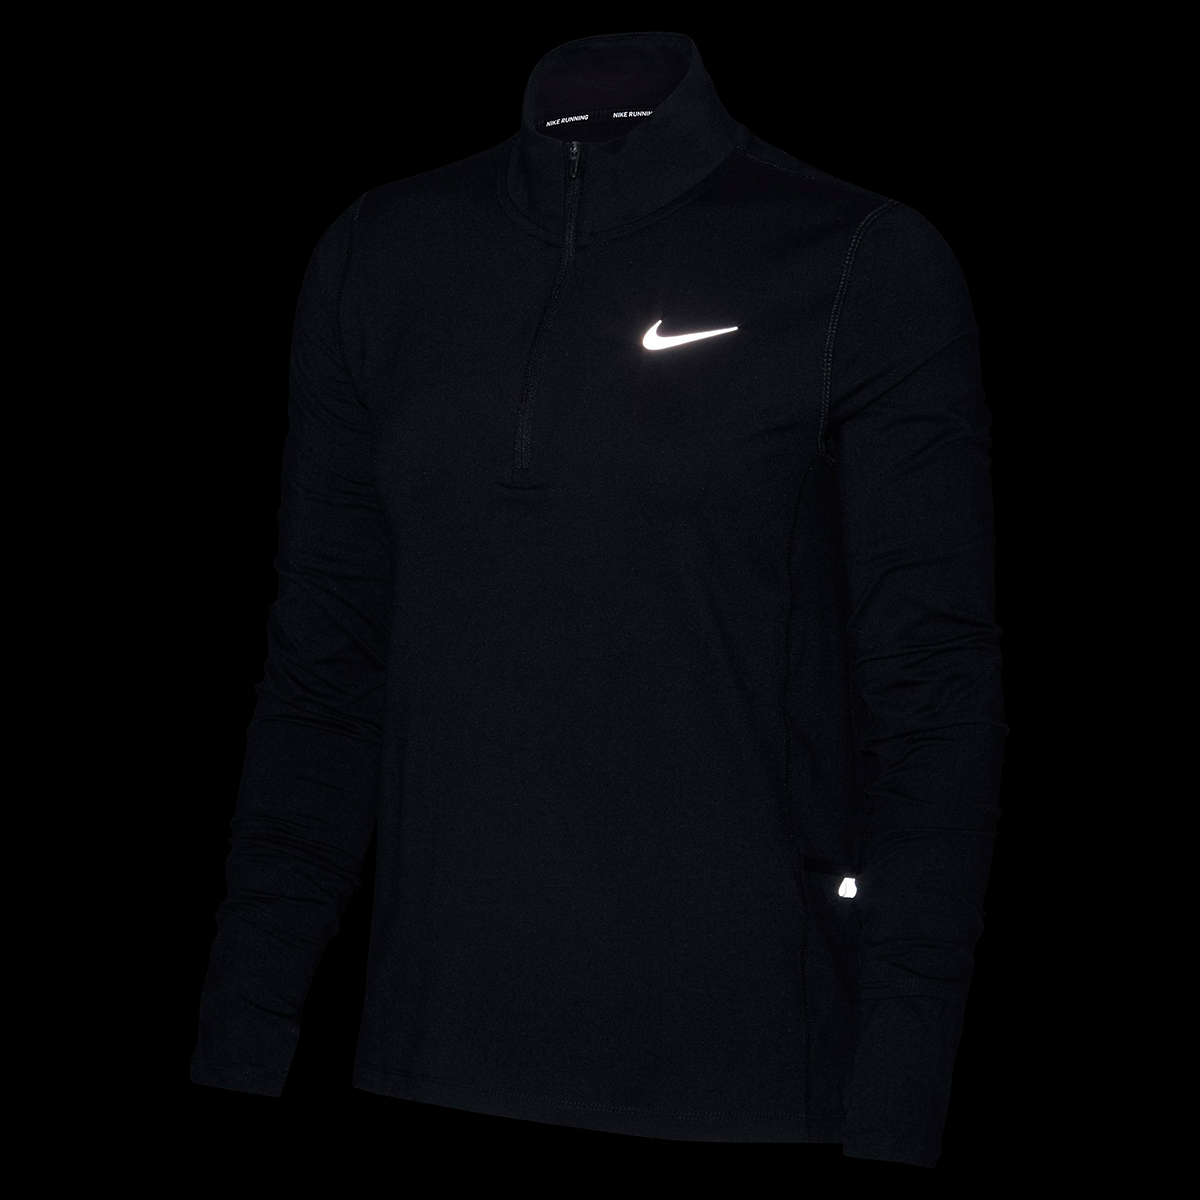 Women's Nike Element 1/2-Zip Running Top - Color: Black - Size: S, Black, large, image 4